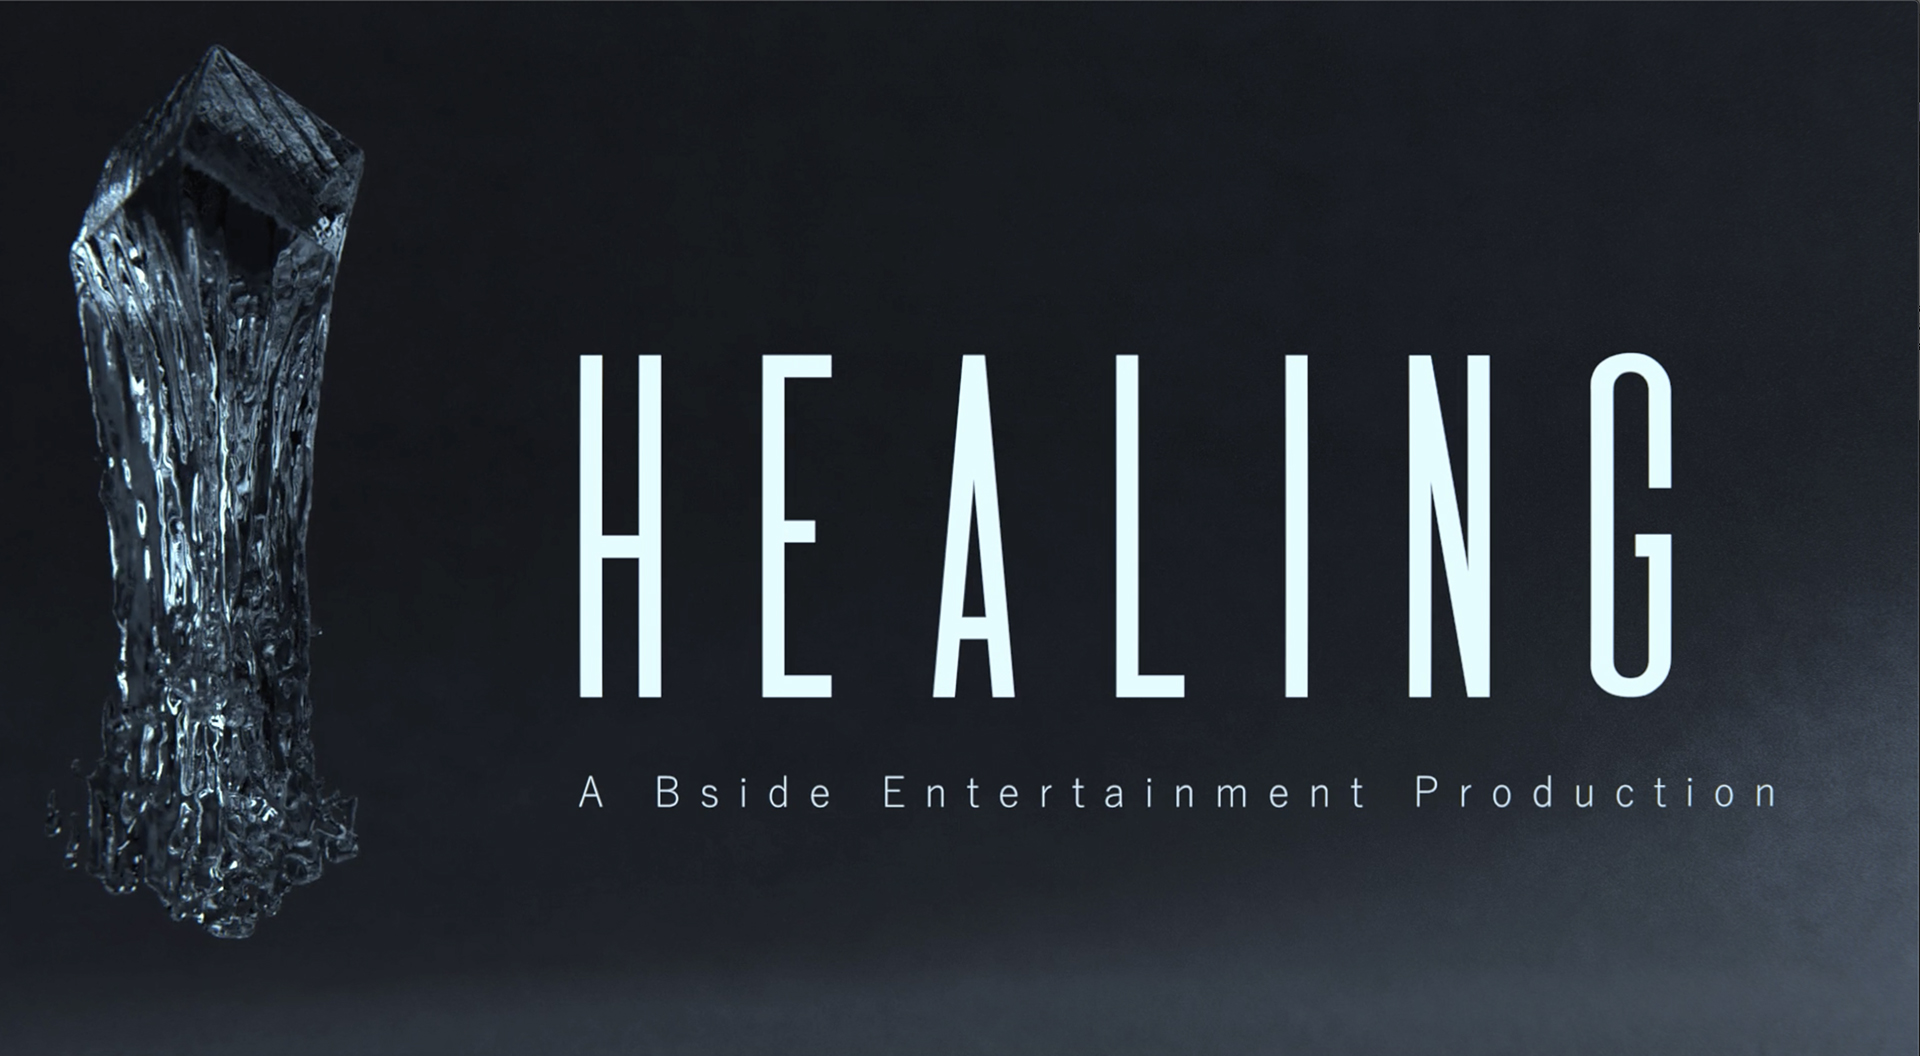 My Rode Reel 2020 The Healing by Bside Entertainment